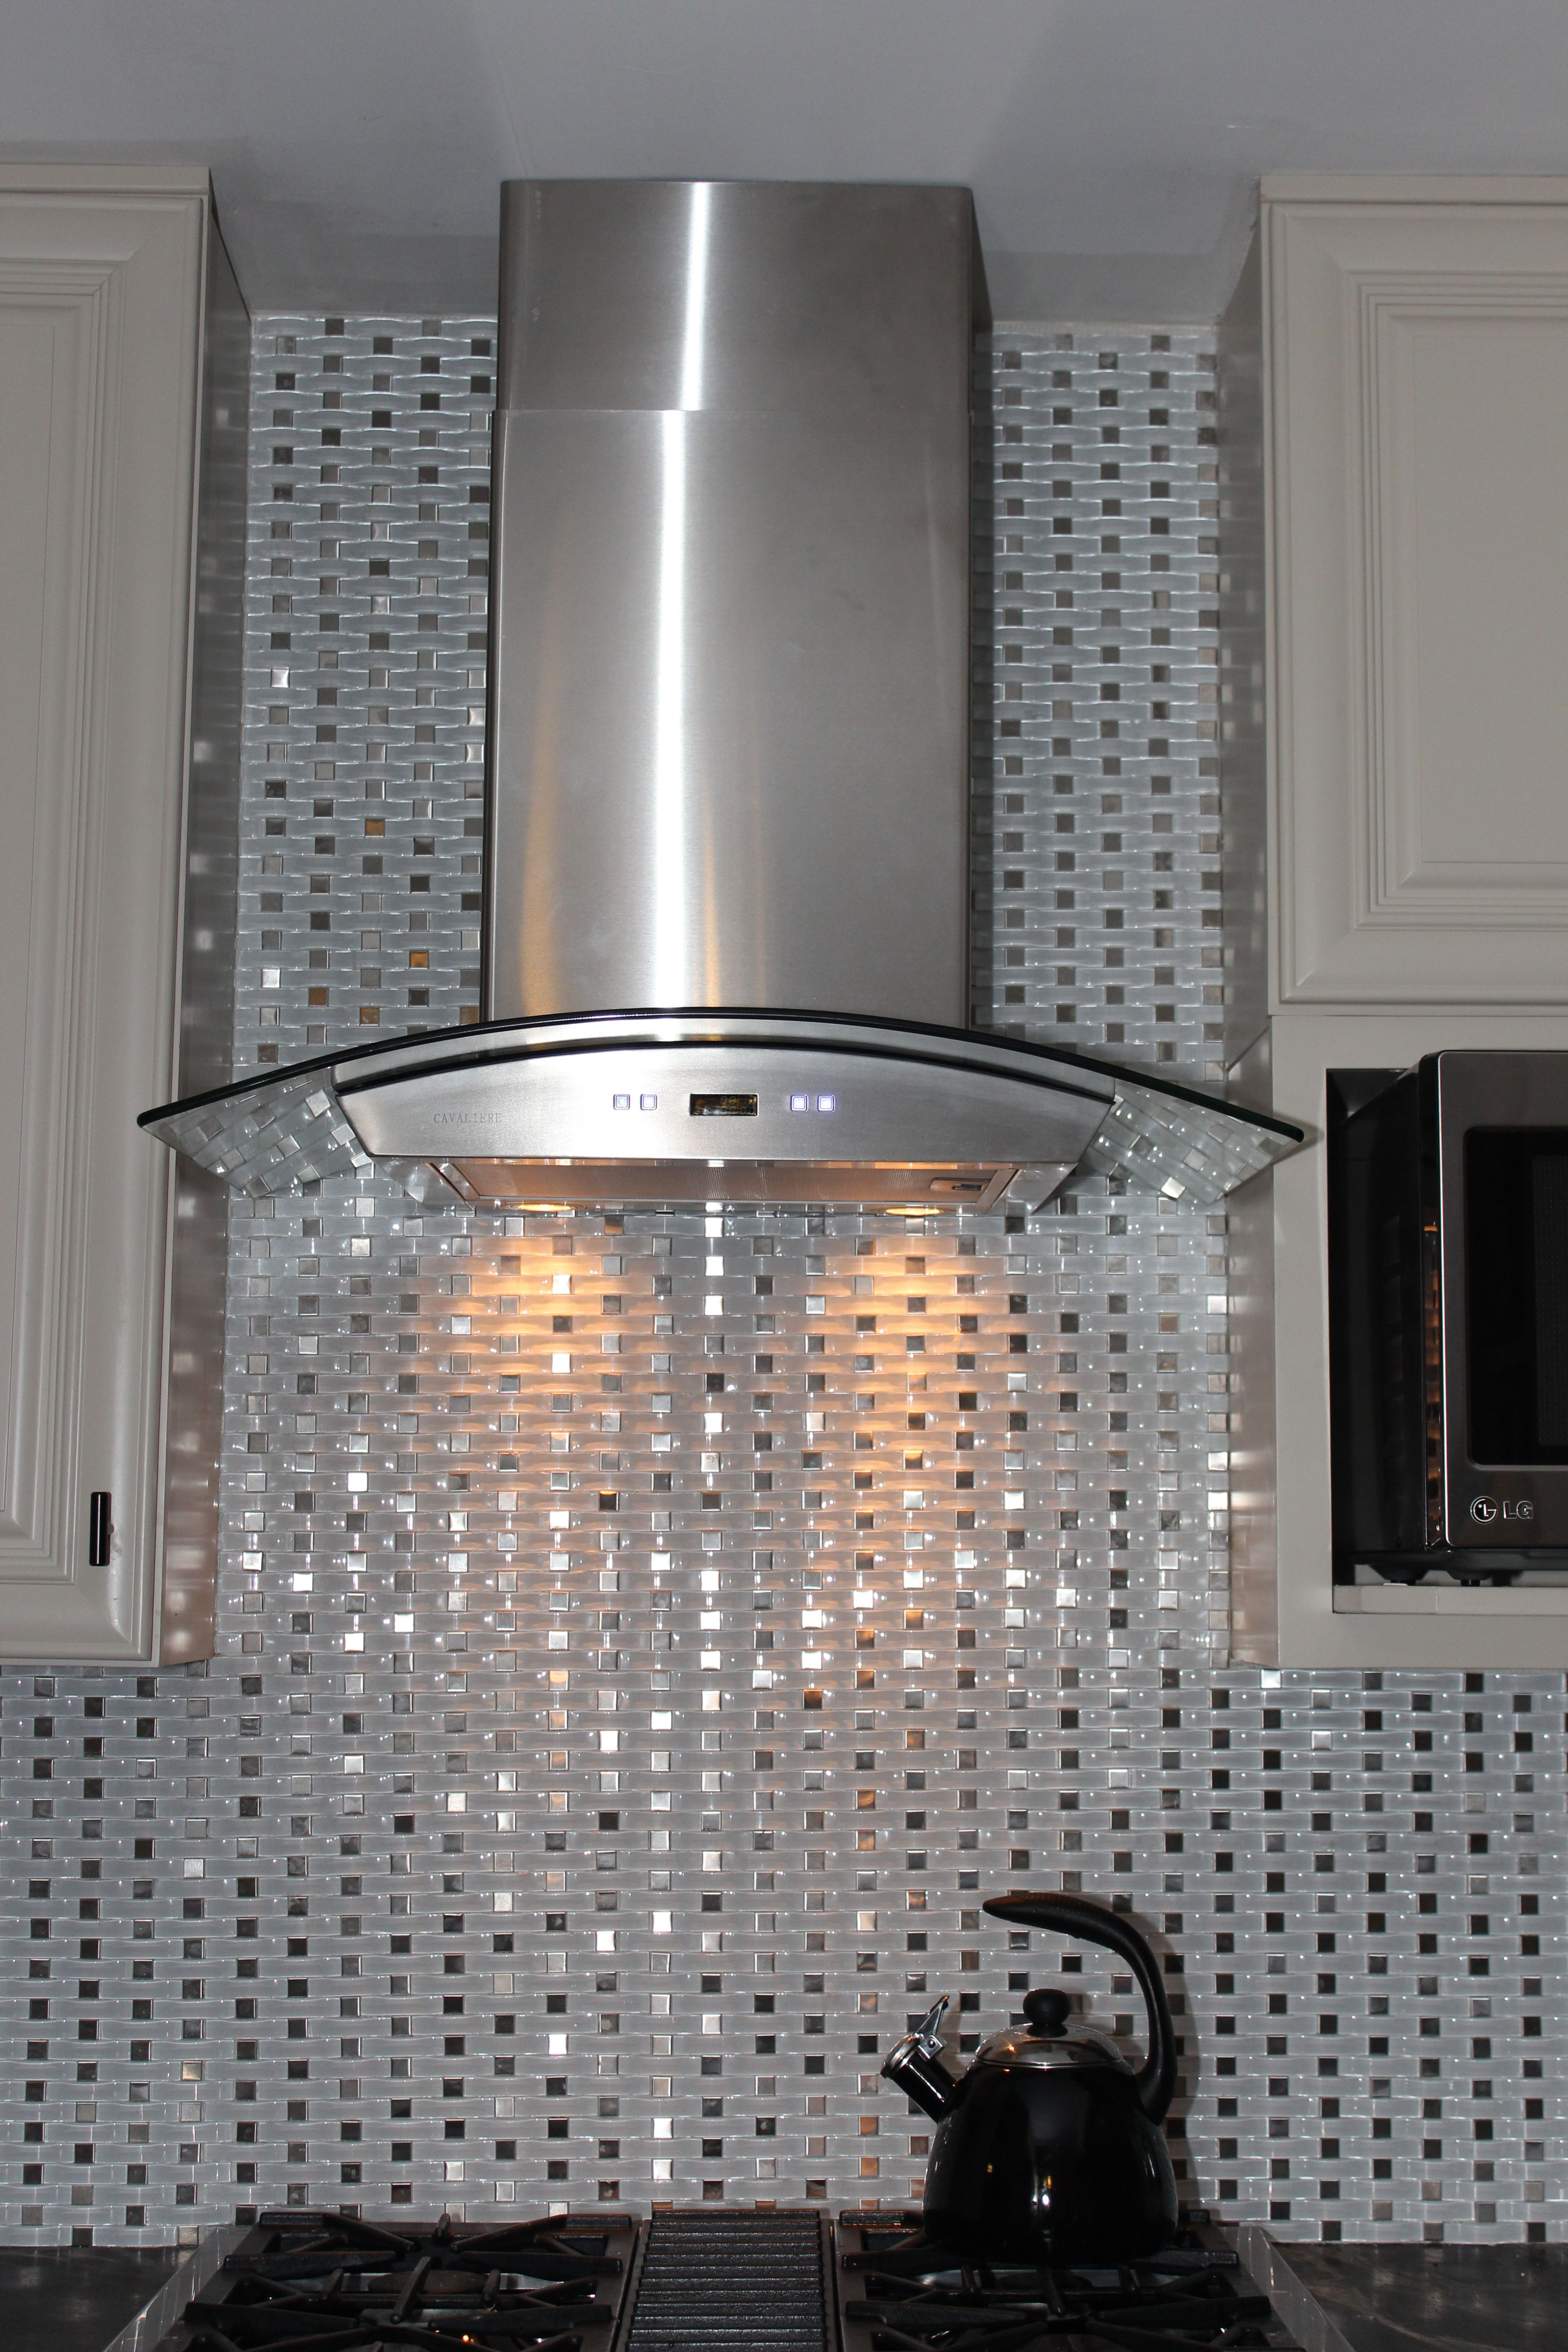 Tile Backsplash Behind Hood Vent Tile Backsplash Condo Design Backsplash